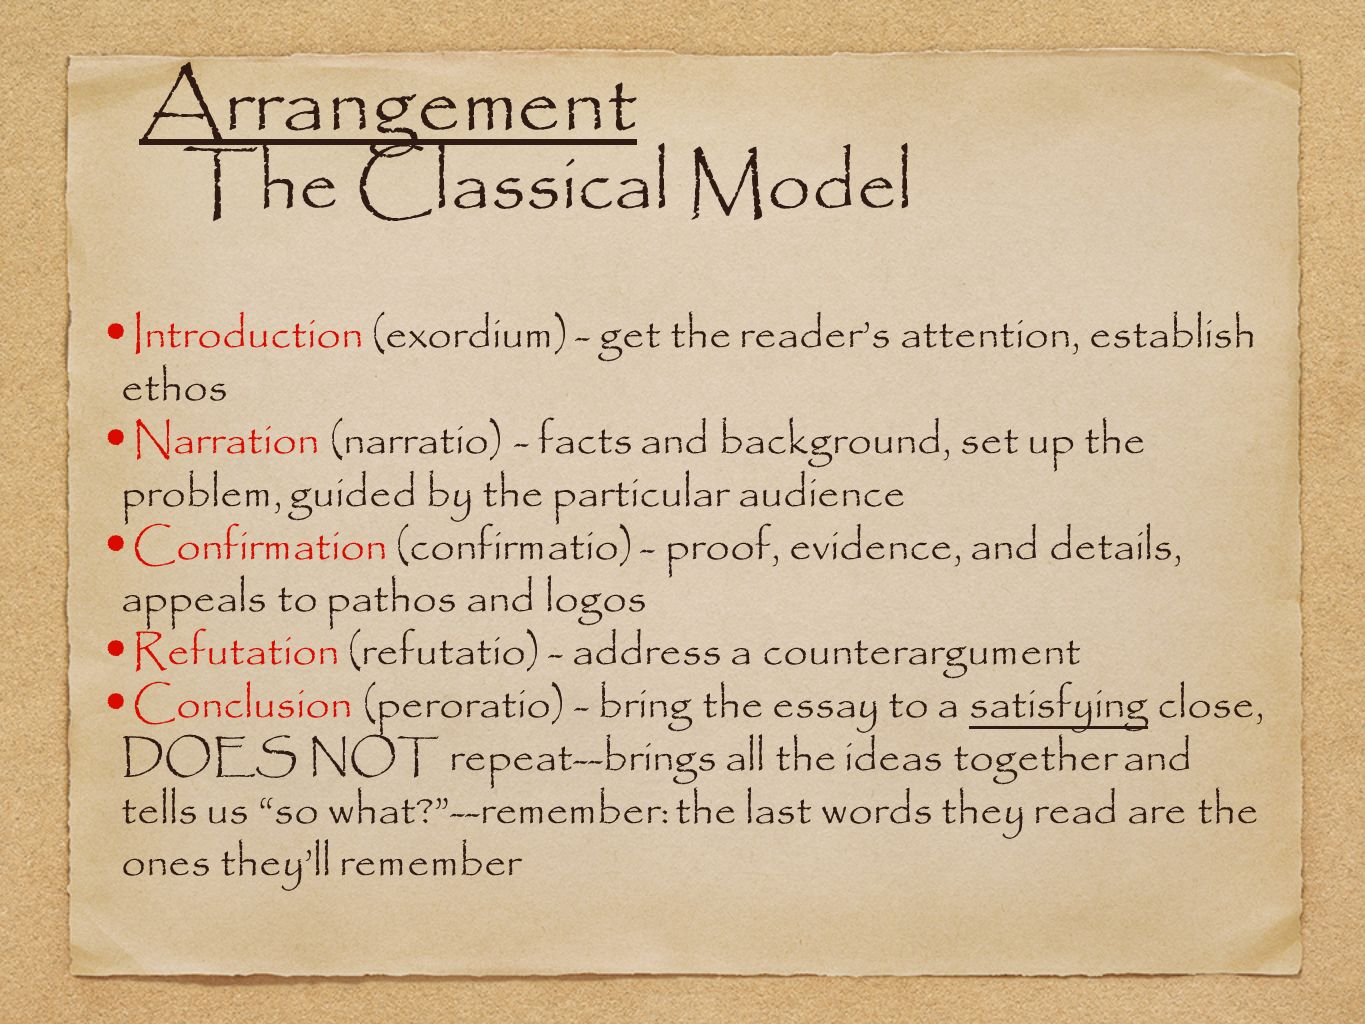 Arrangement The Classical Model Introduction (exordium) - get the reader's attention, establish ethos Narration (narratio) - facts and background, set up the problem, guided by the particular audience Confirmation (confirmatio) - proof, evidence, and details, appeals to pathos and logos Refutation (refutatio) - address a counterargument Conclusion (peroratio) - bring the essay to a satisfying close, DOES NOT repeat--brings all the ideas together and tells us so what --remember: the last words they read are the ones they'll remember